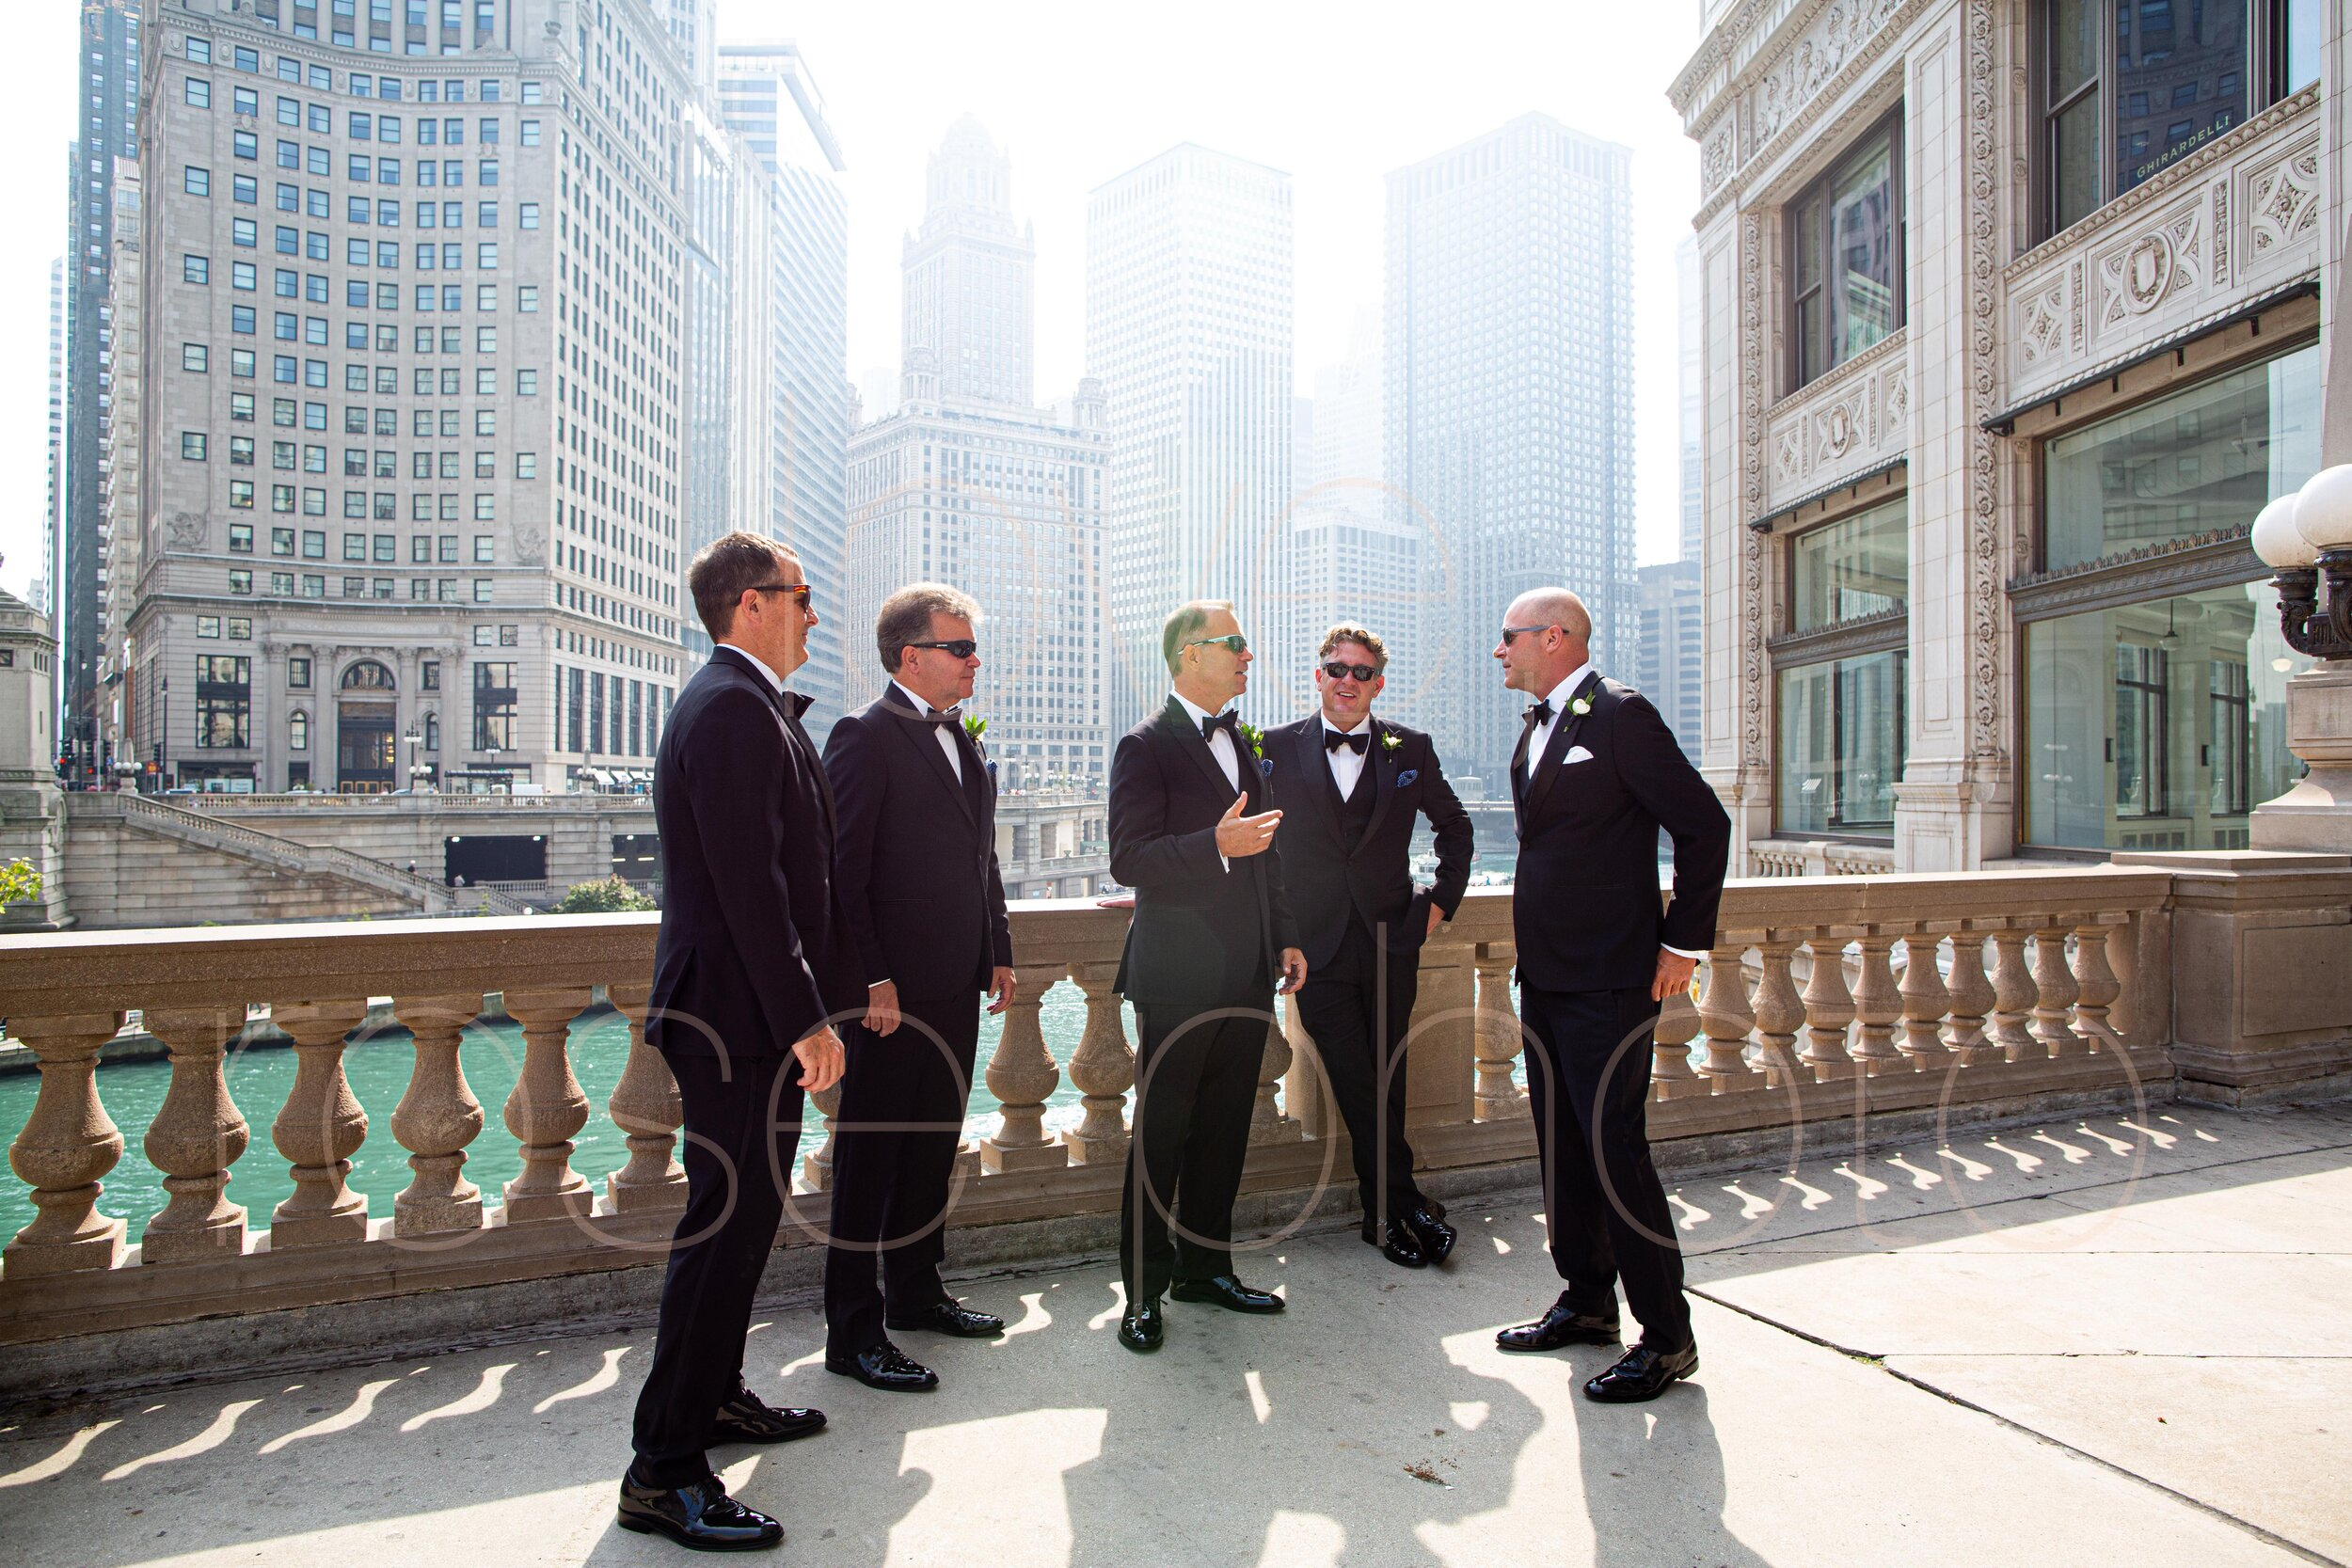 N + J best of chicago history museum wedding lux wed photographer best of the knot photography-42.jpg